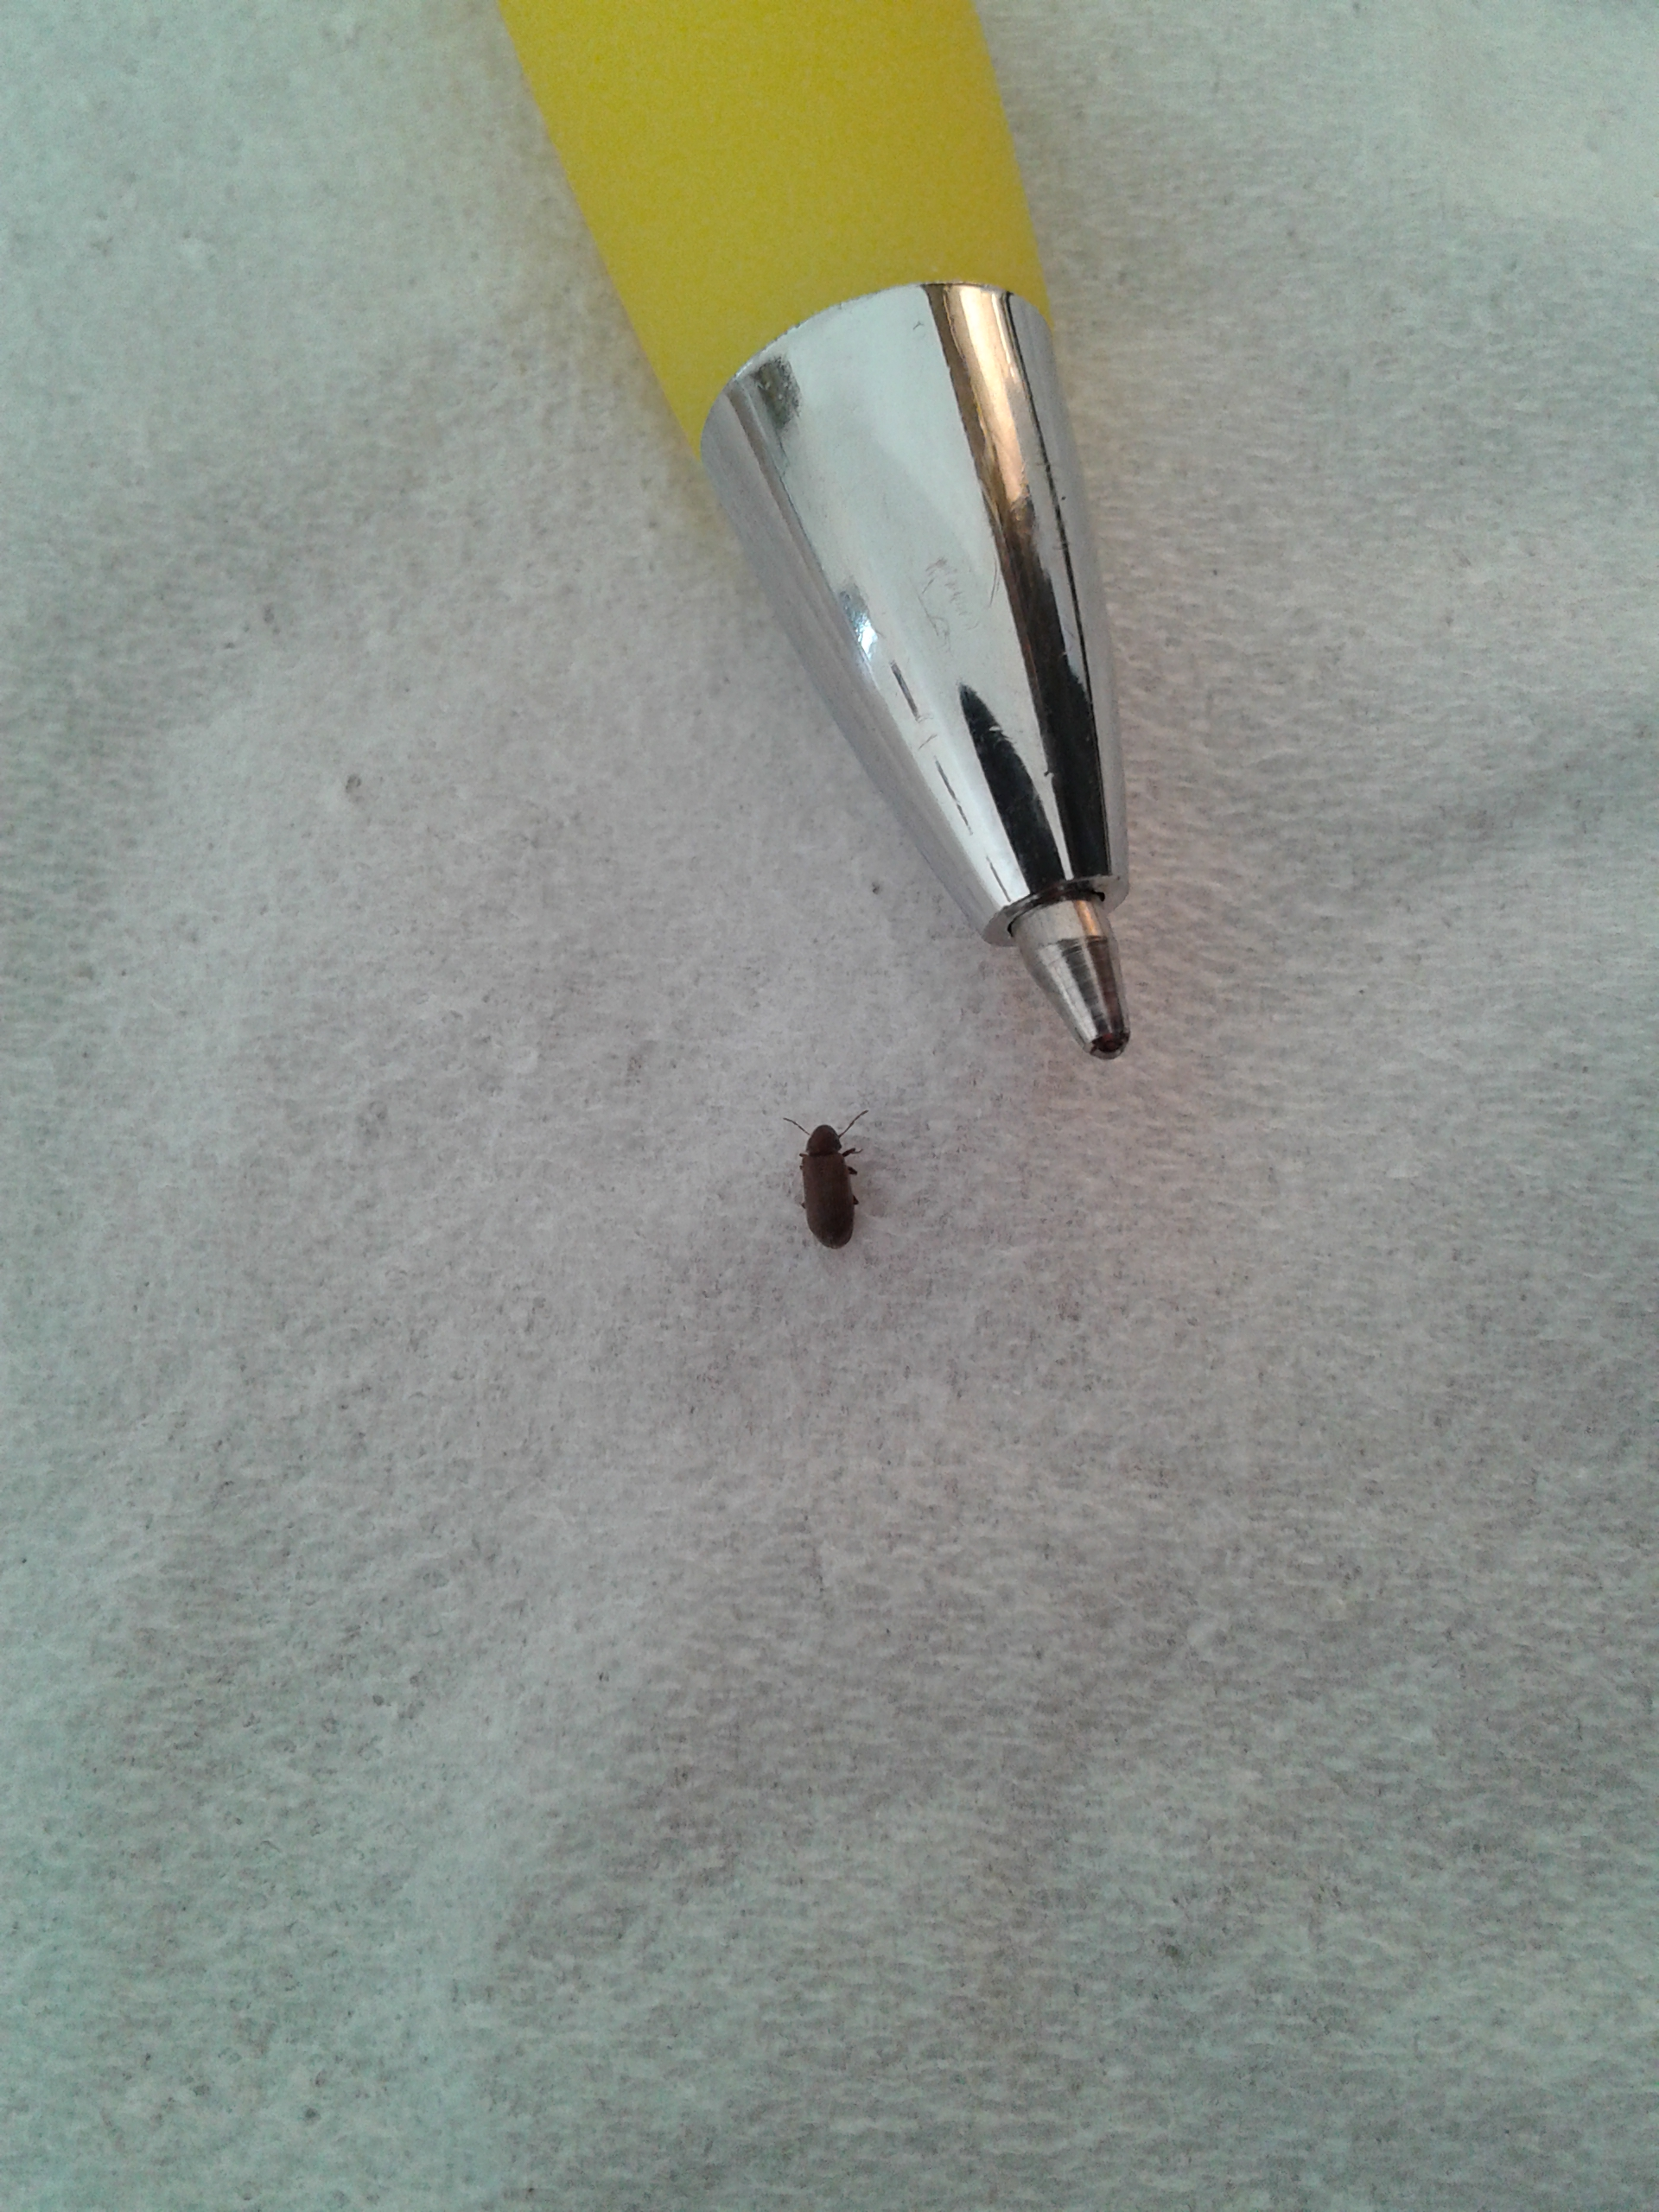 20150610 183404 jpg. NaturePlus  Tiny black bugs around the house